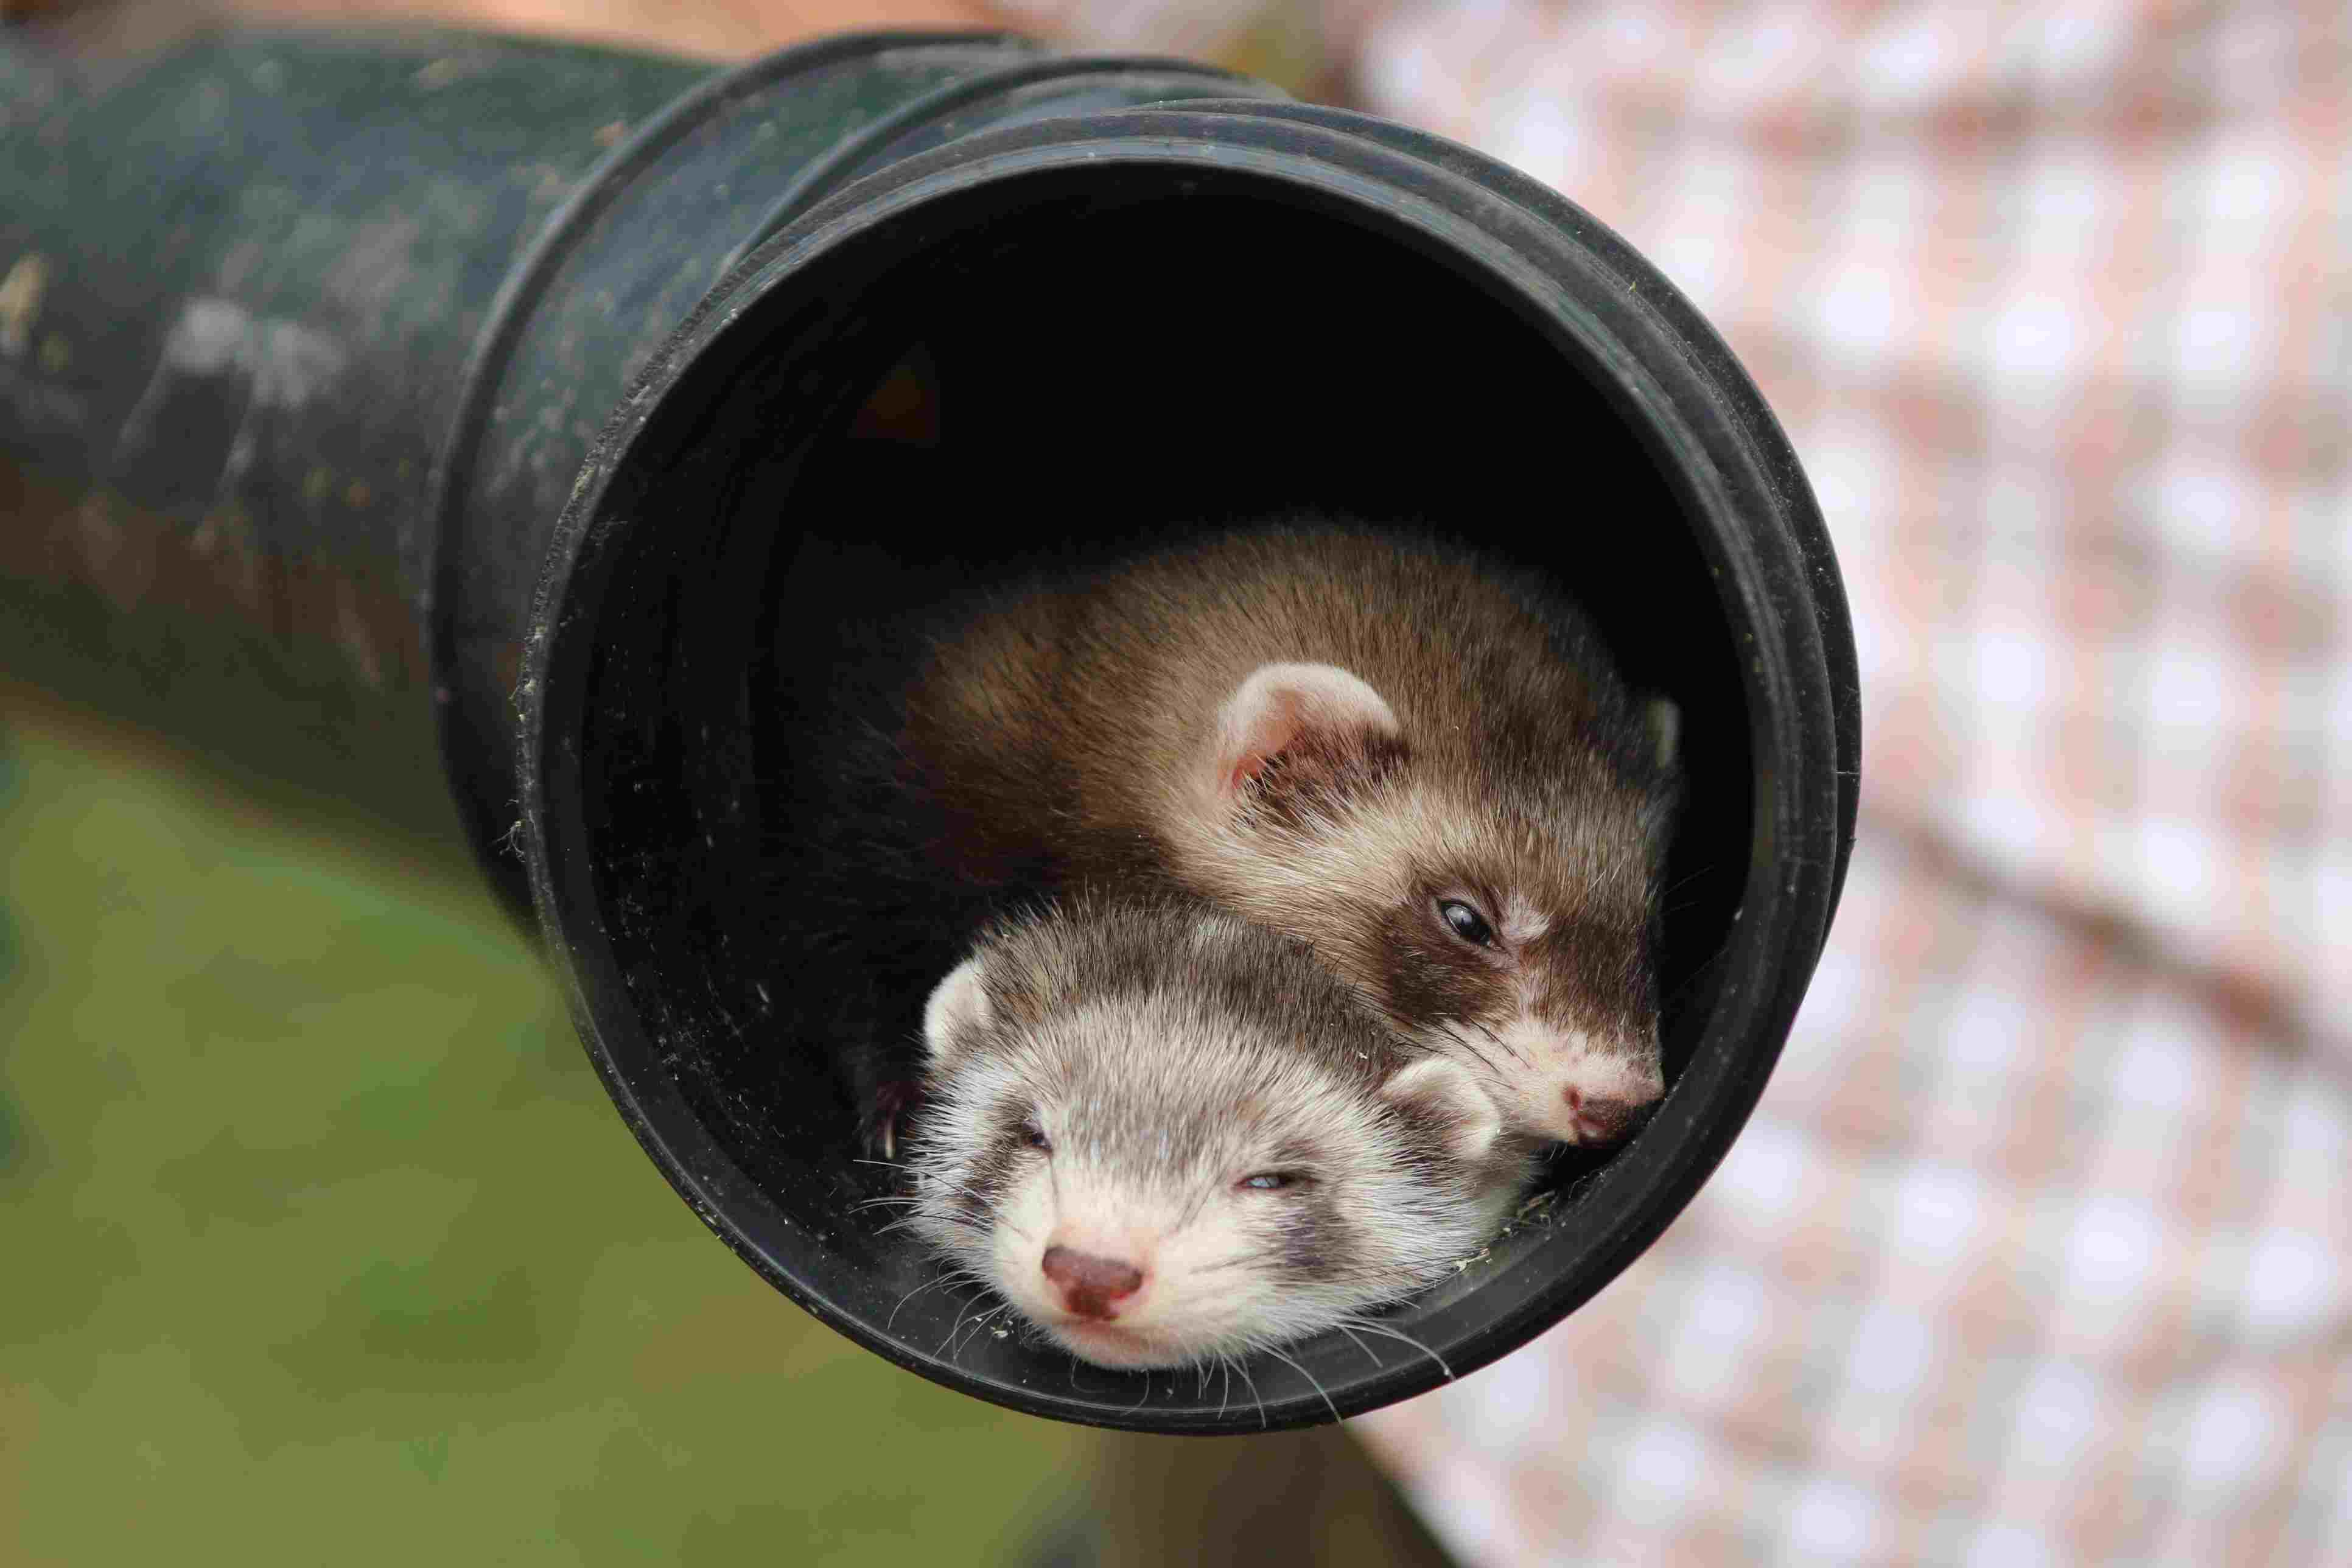 Two ferrets in a pipe